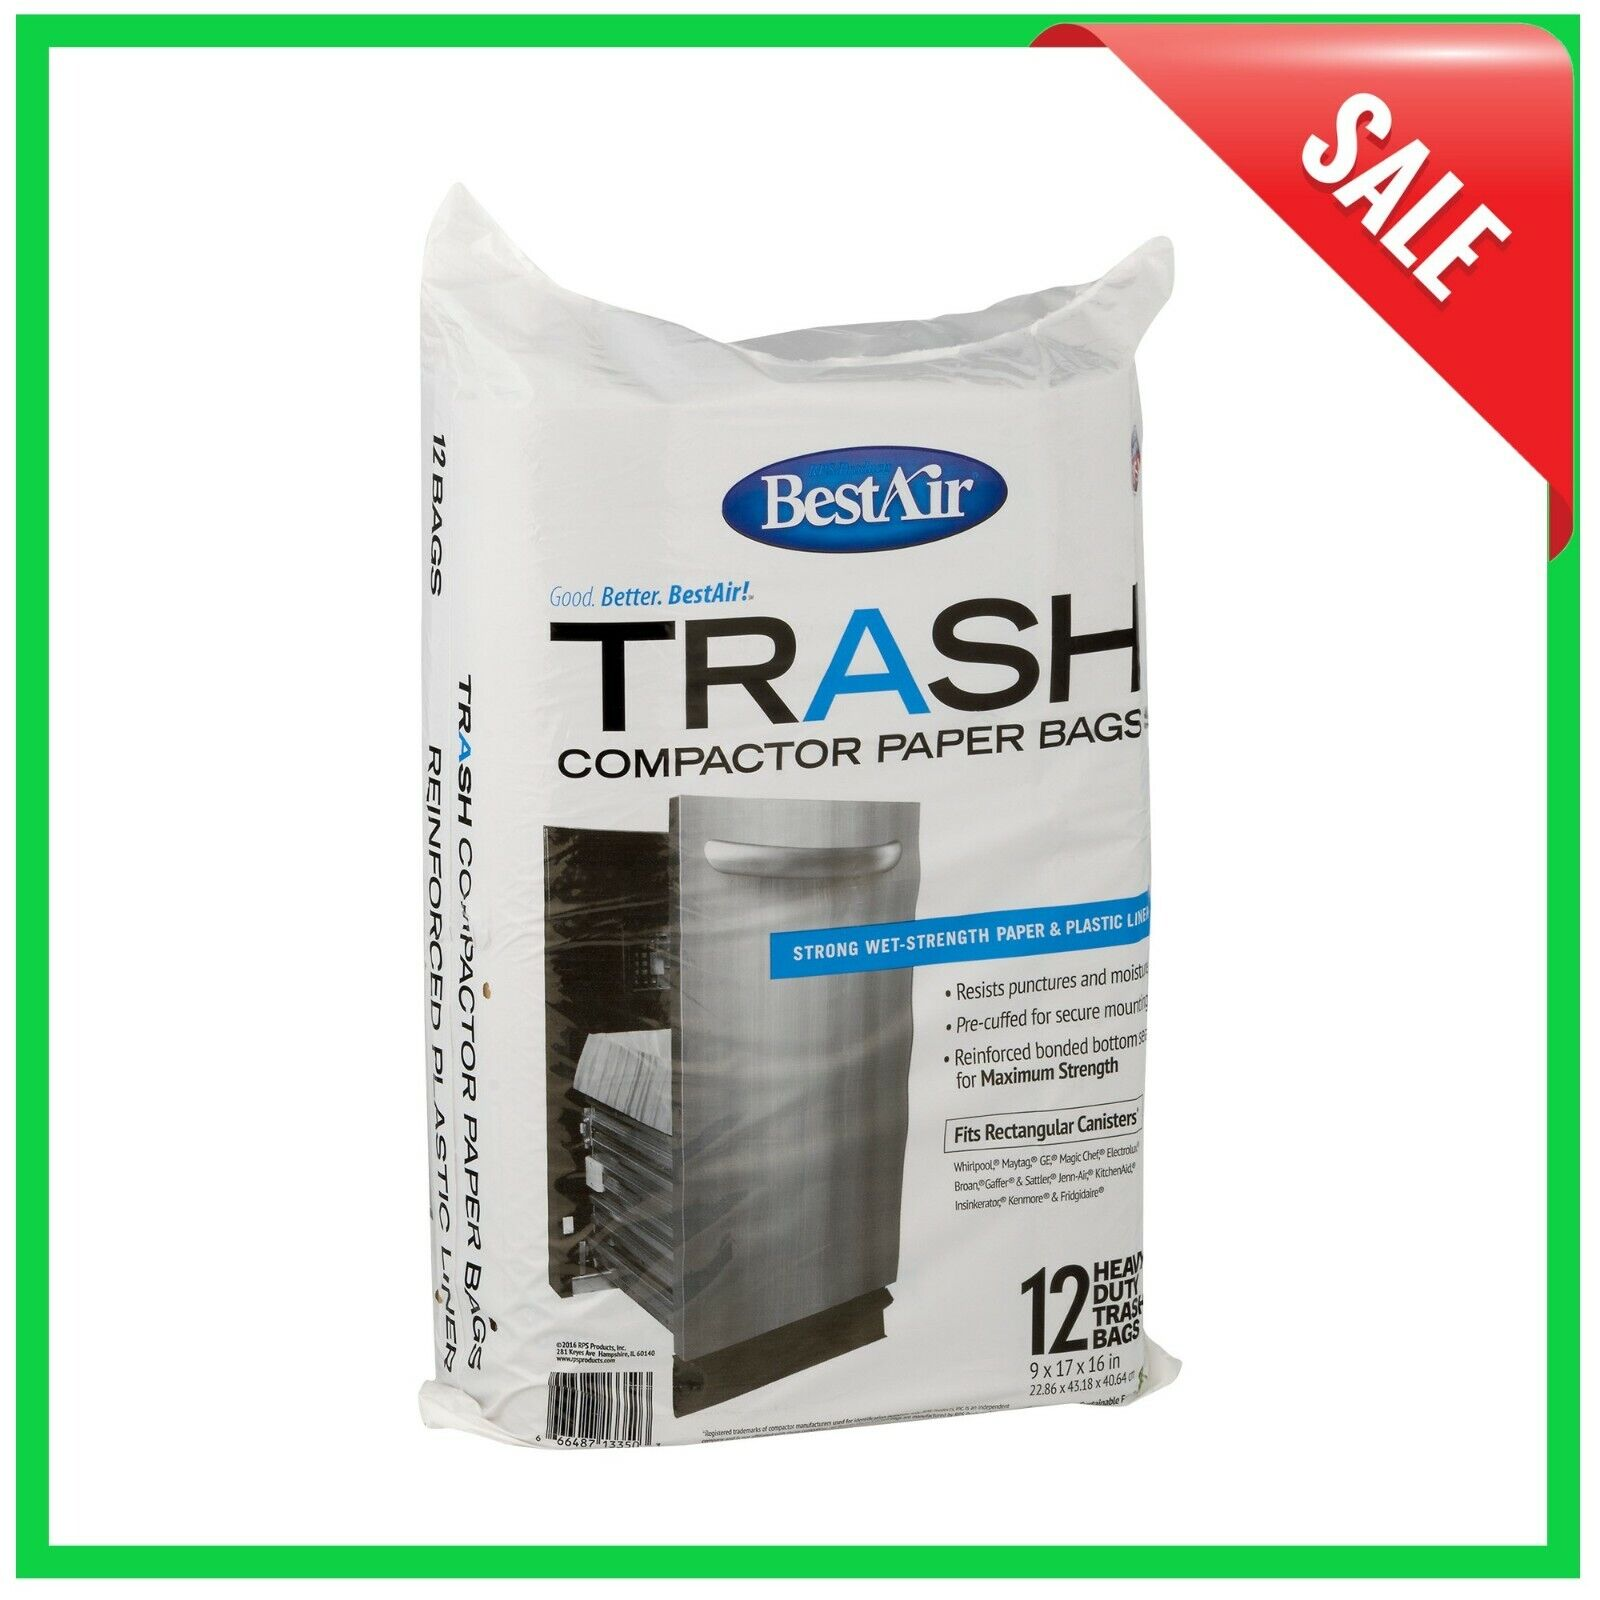 BestAir Trash Compactor Bags -12 Bags, Strong Wet-Strength P